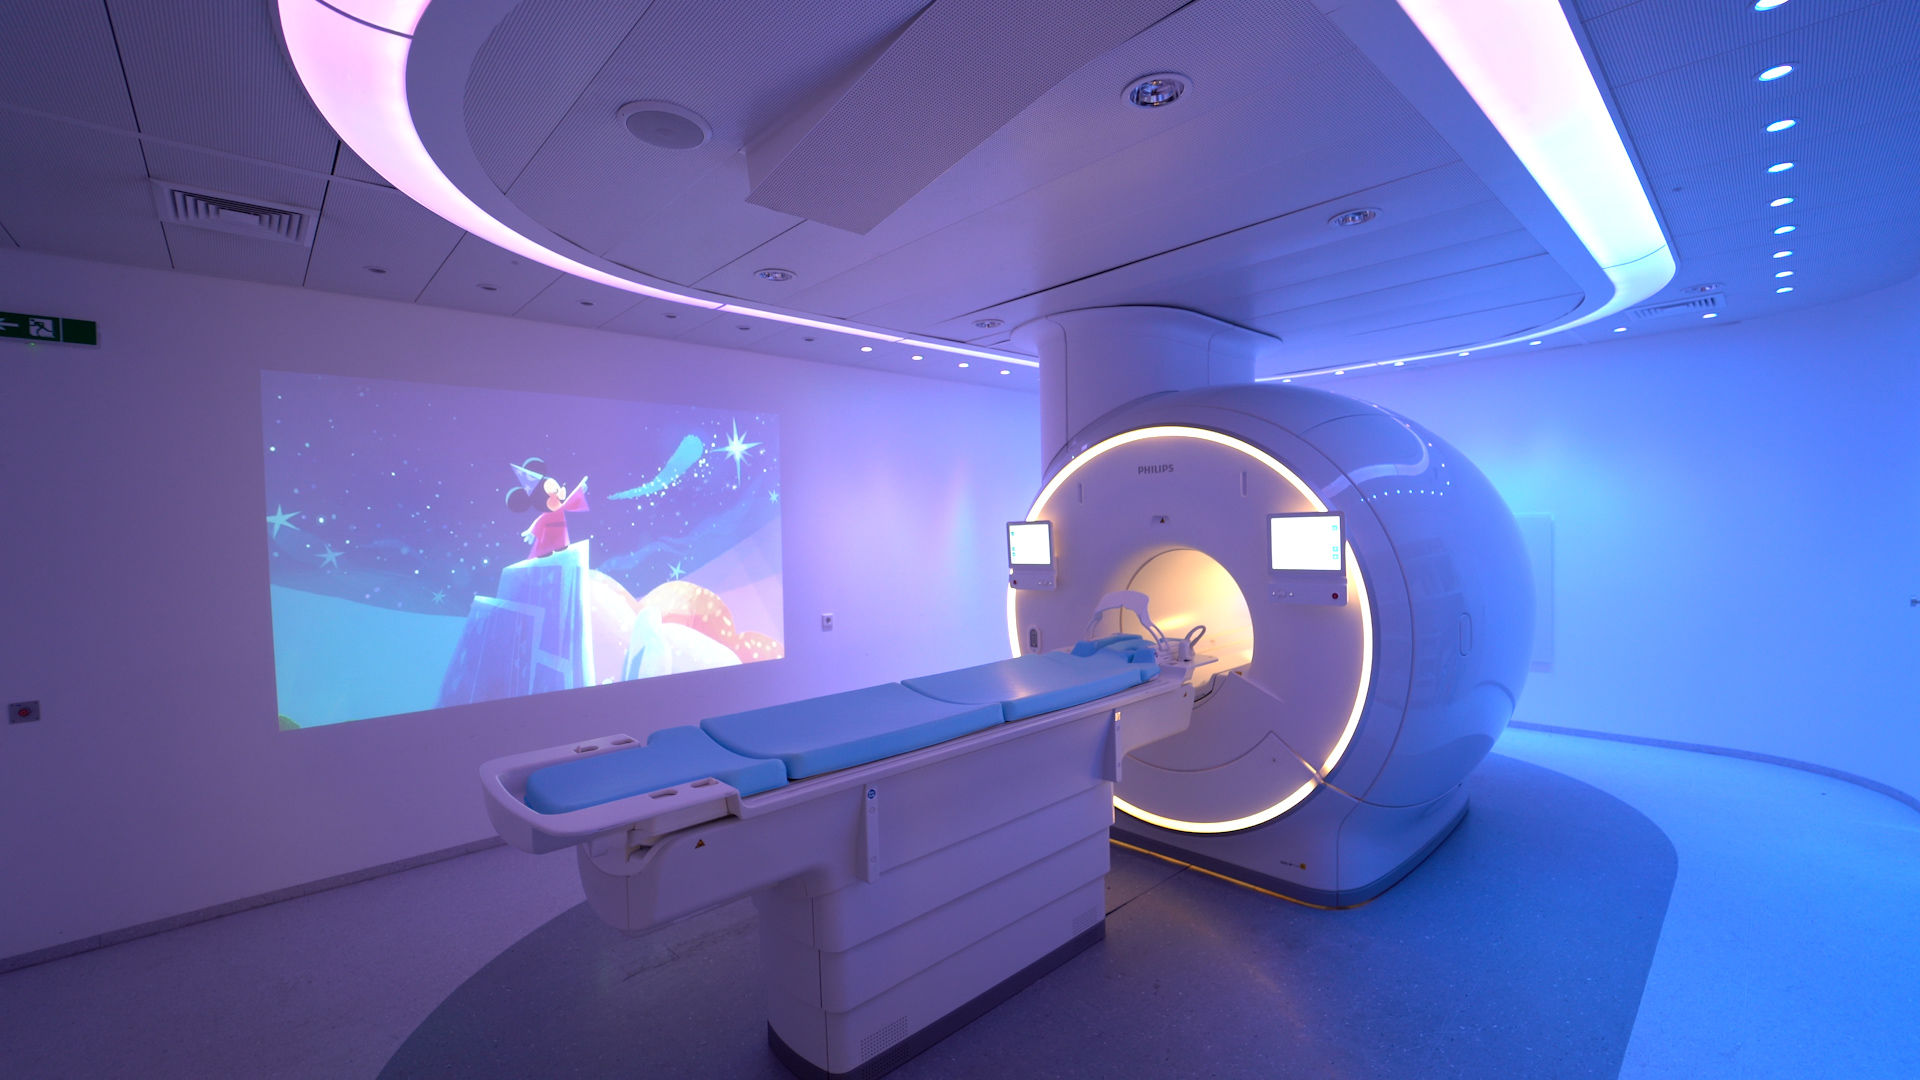 Philips and Disney join forces to improve the healthcare experience of children